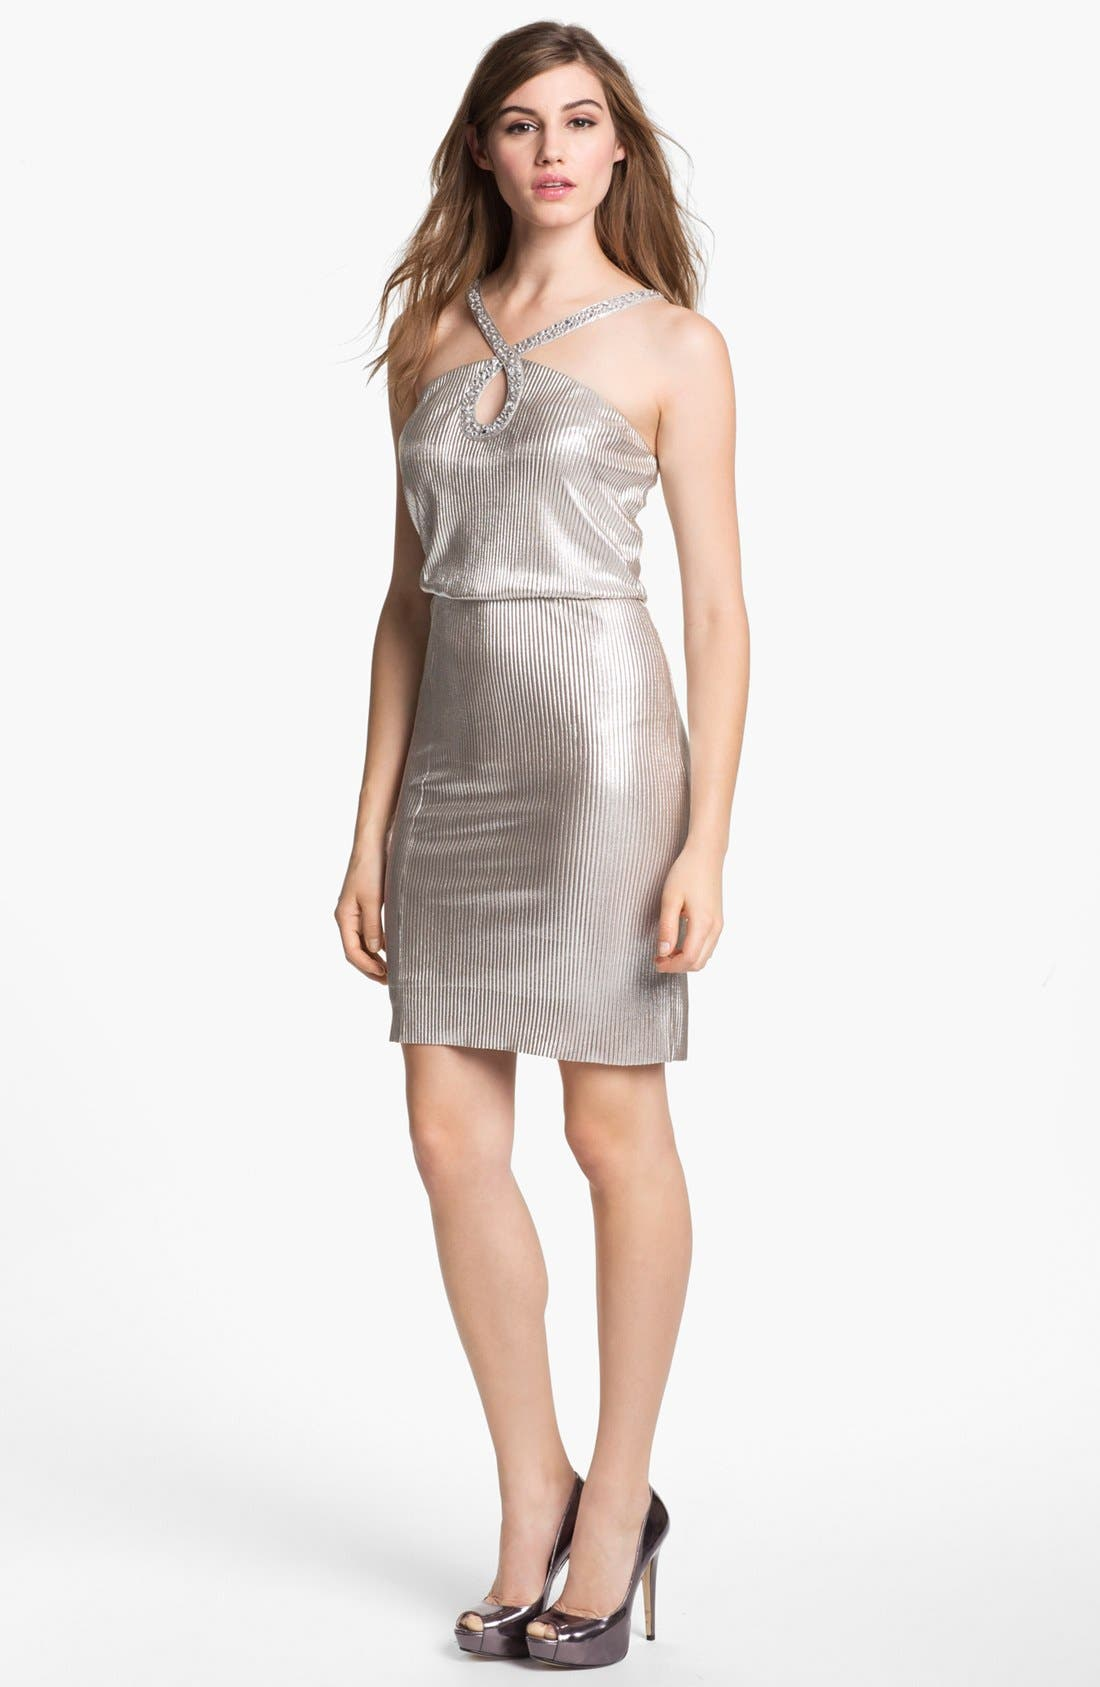 Main Image - Hailey by Adrianna Papell Embellished Metallic Dress